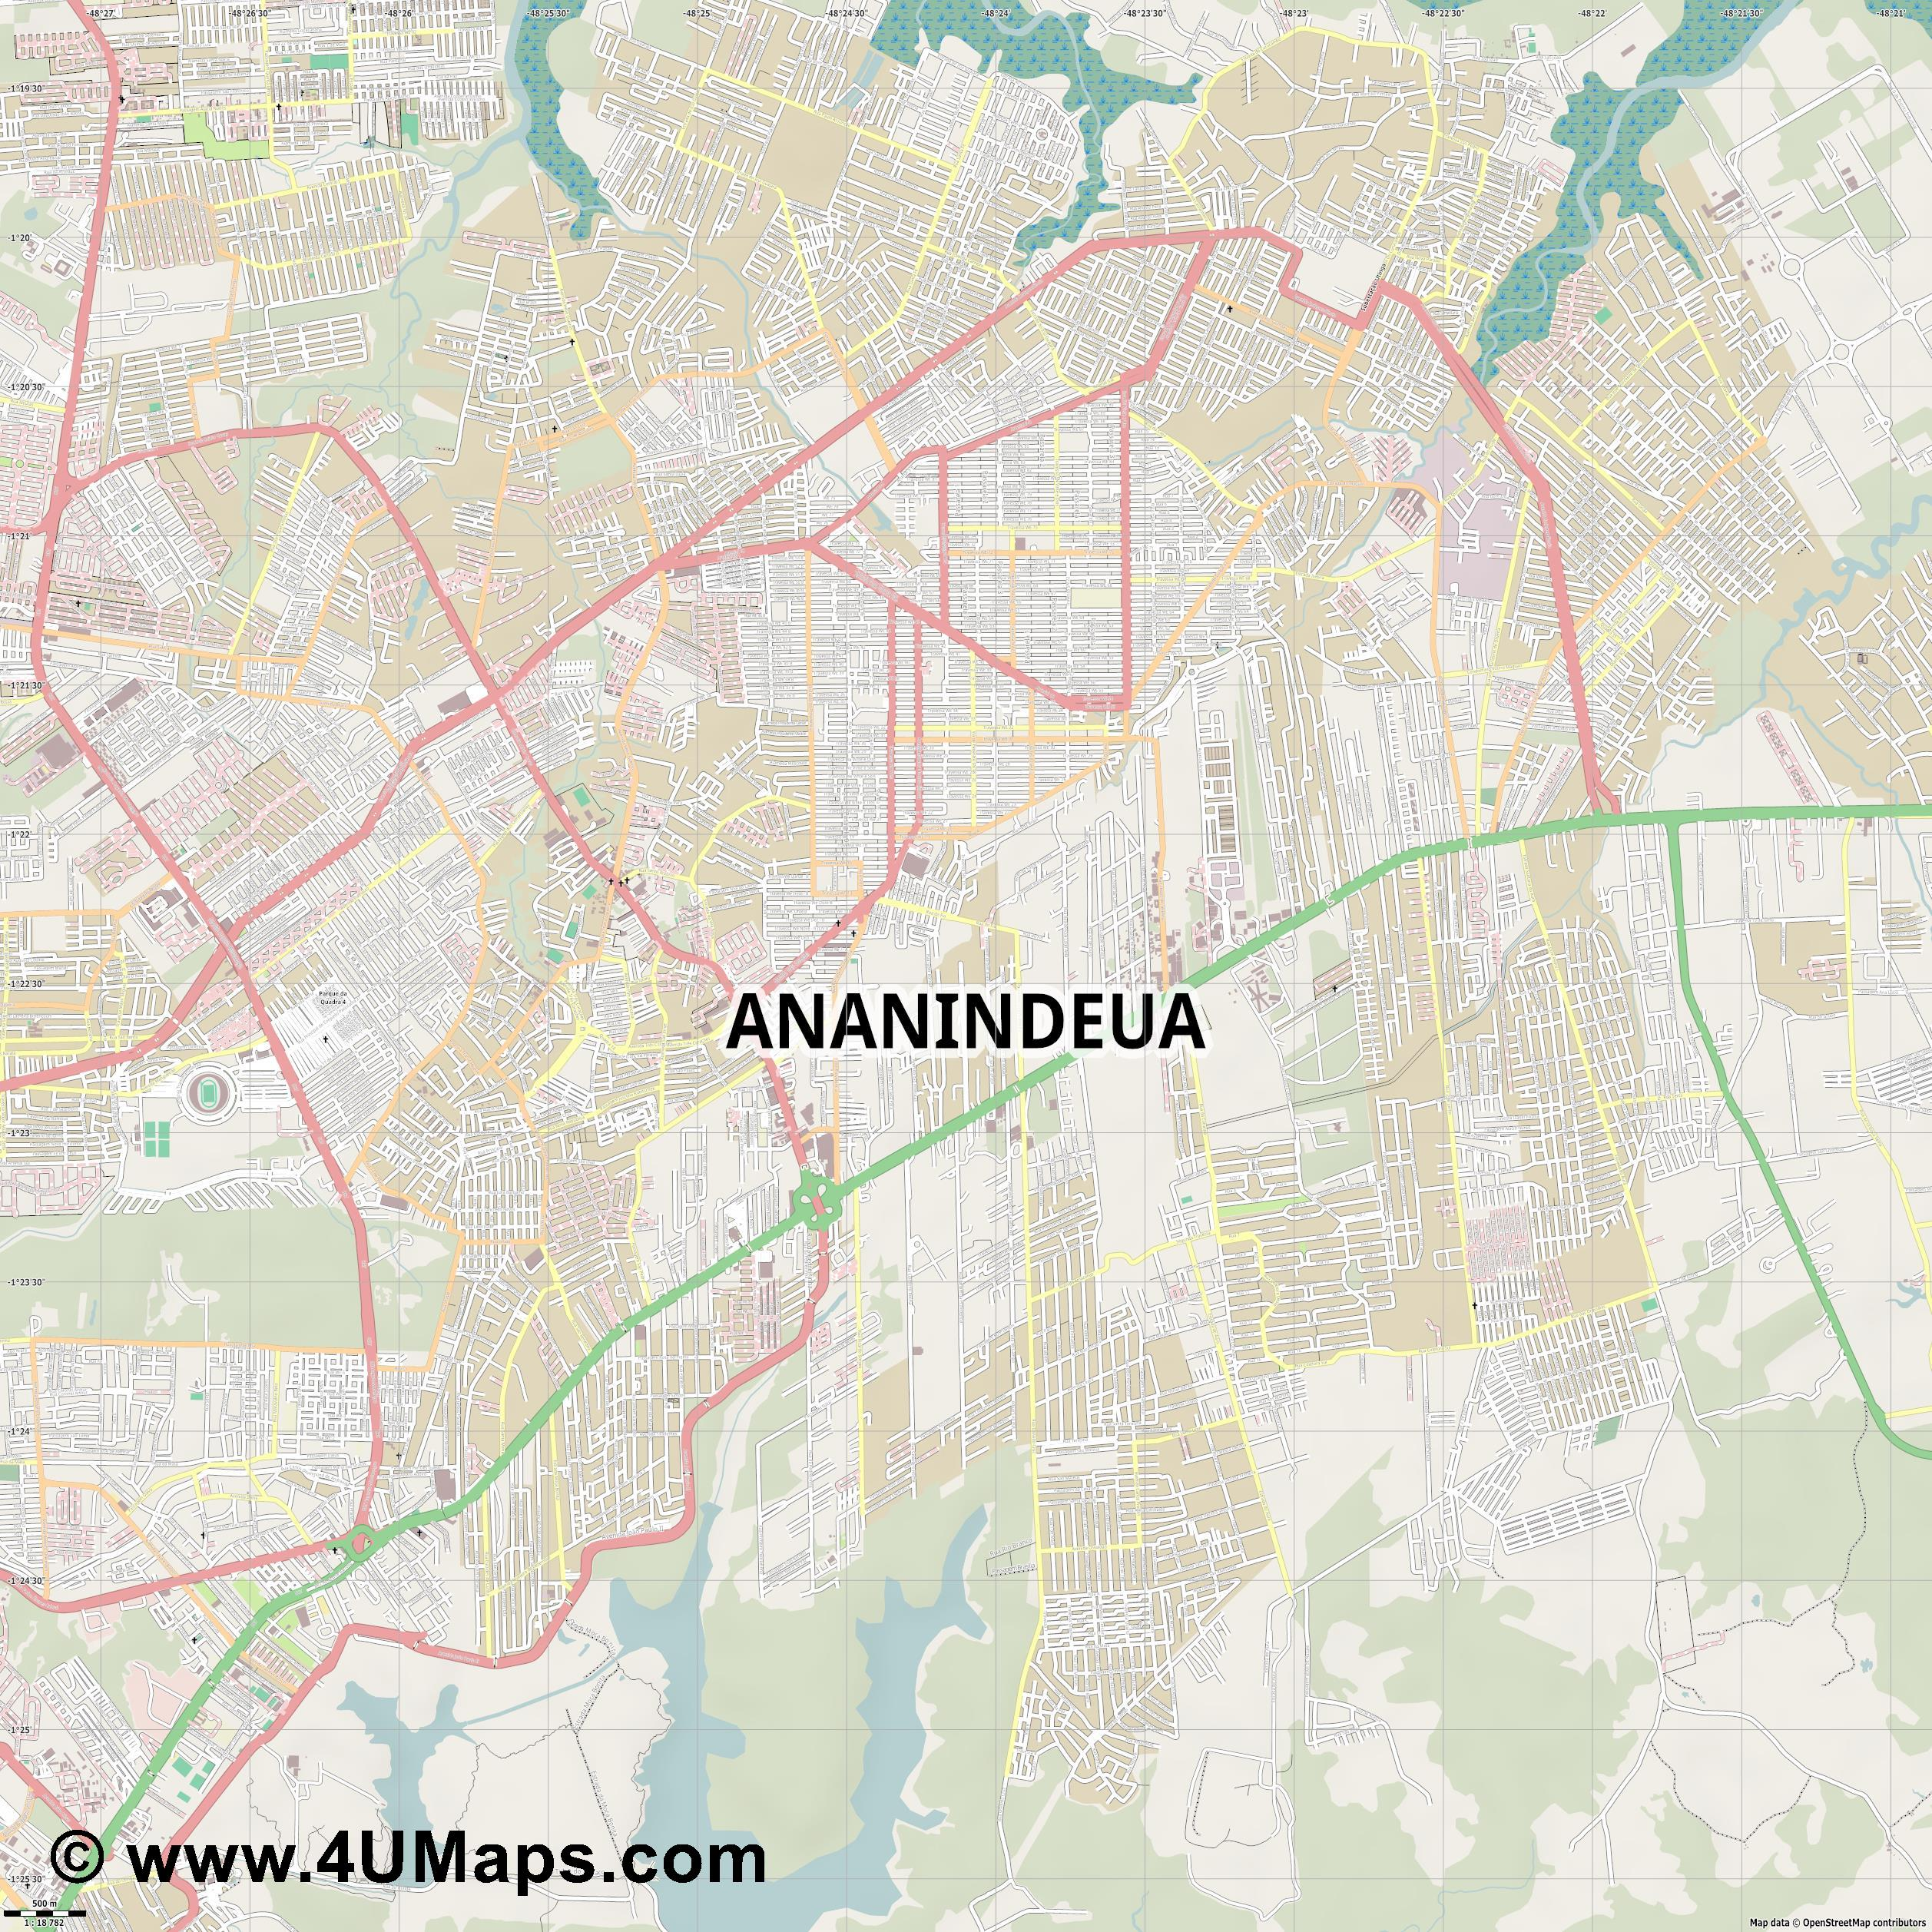 Ananindeua  jpg ultra high detail preview vector city map